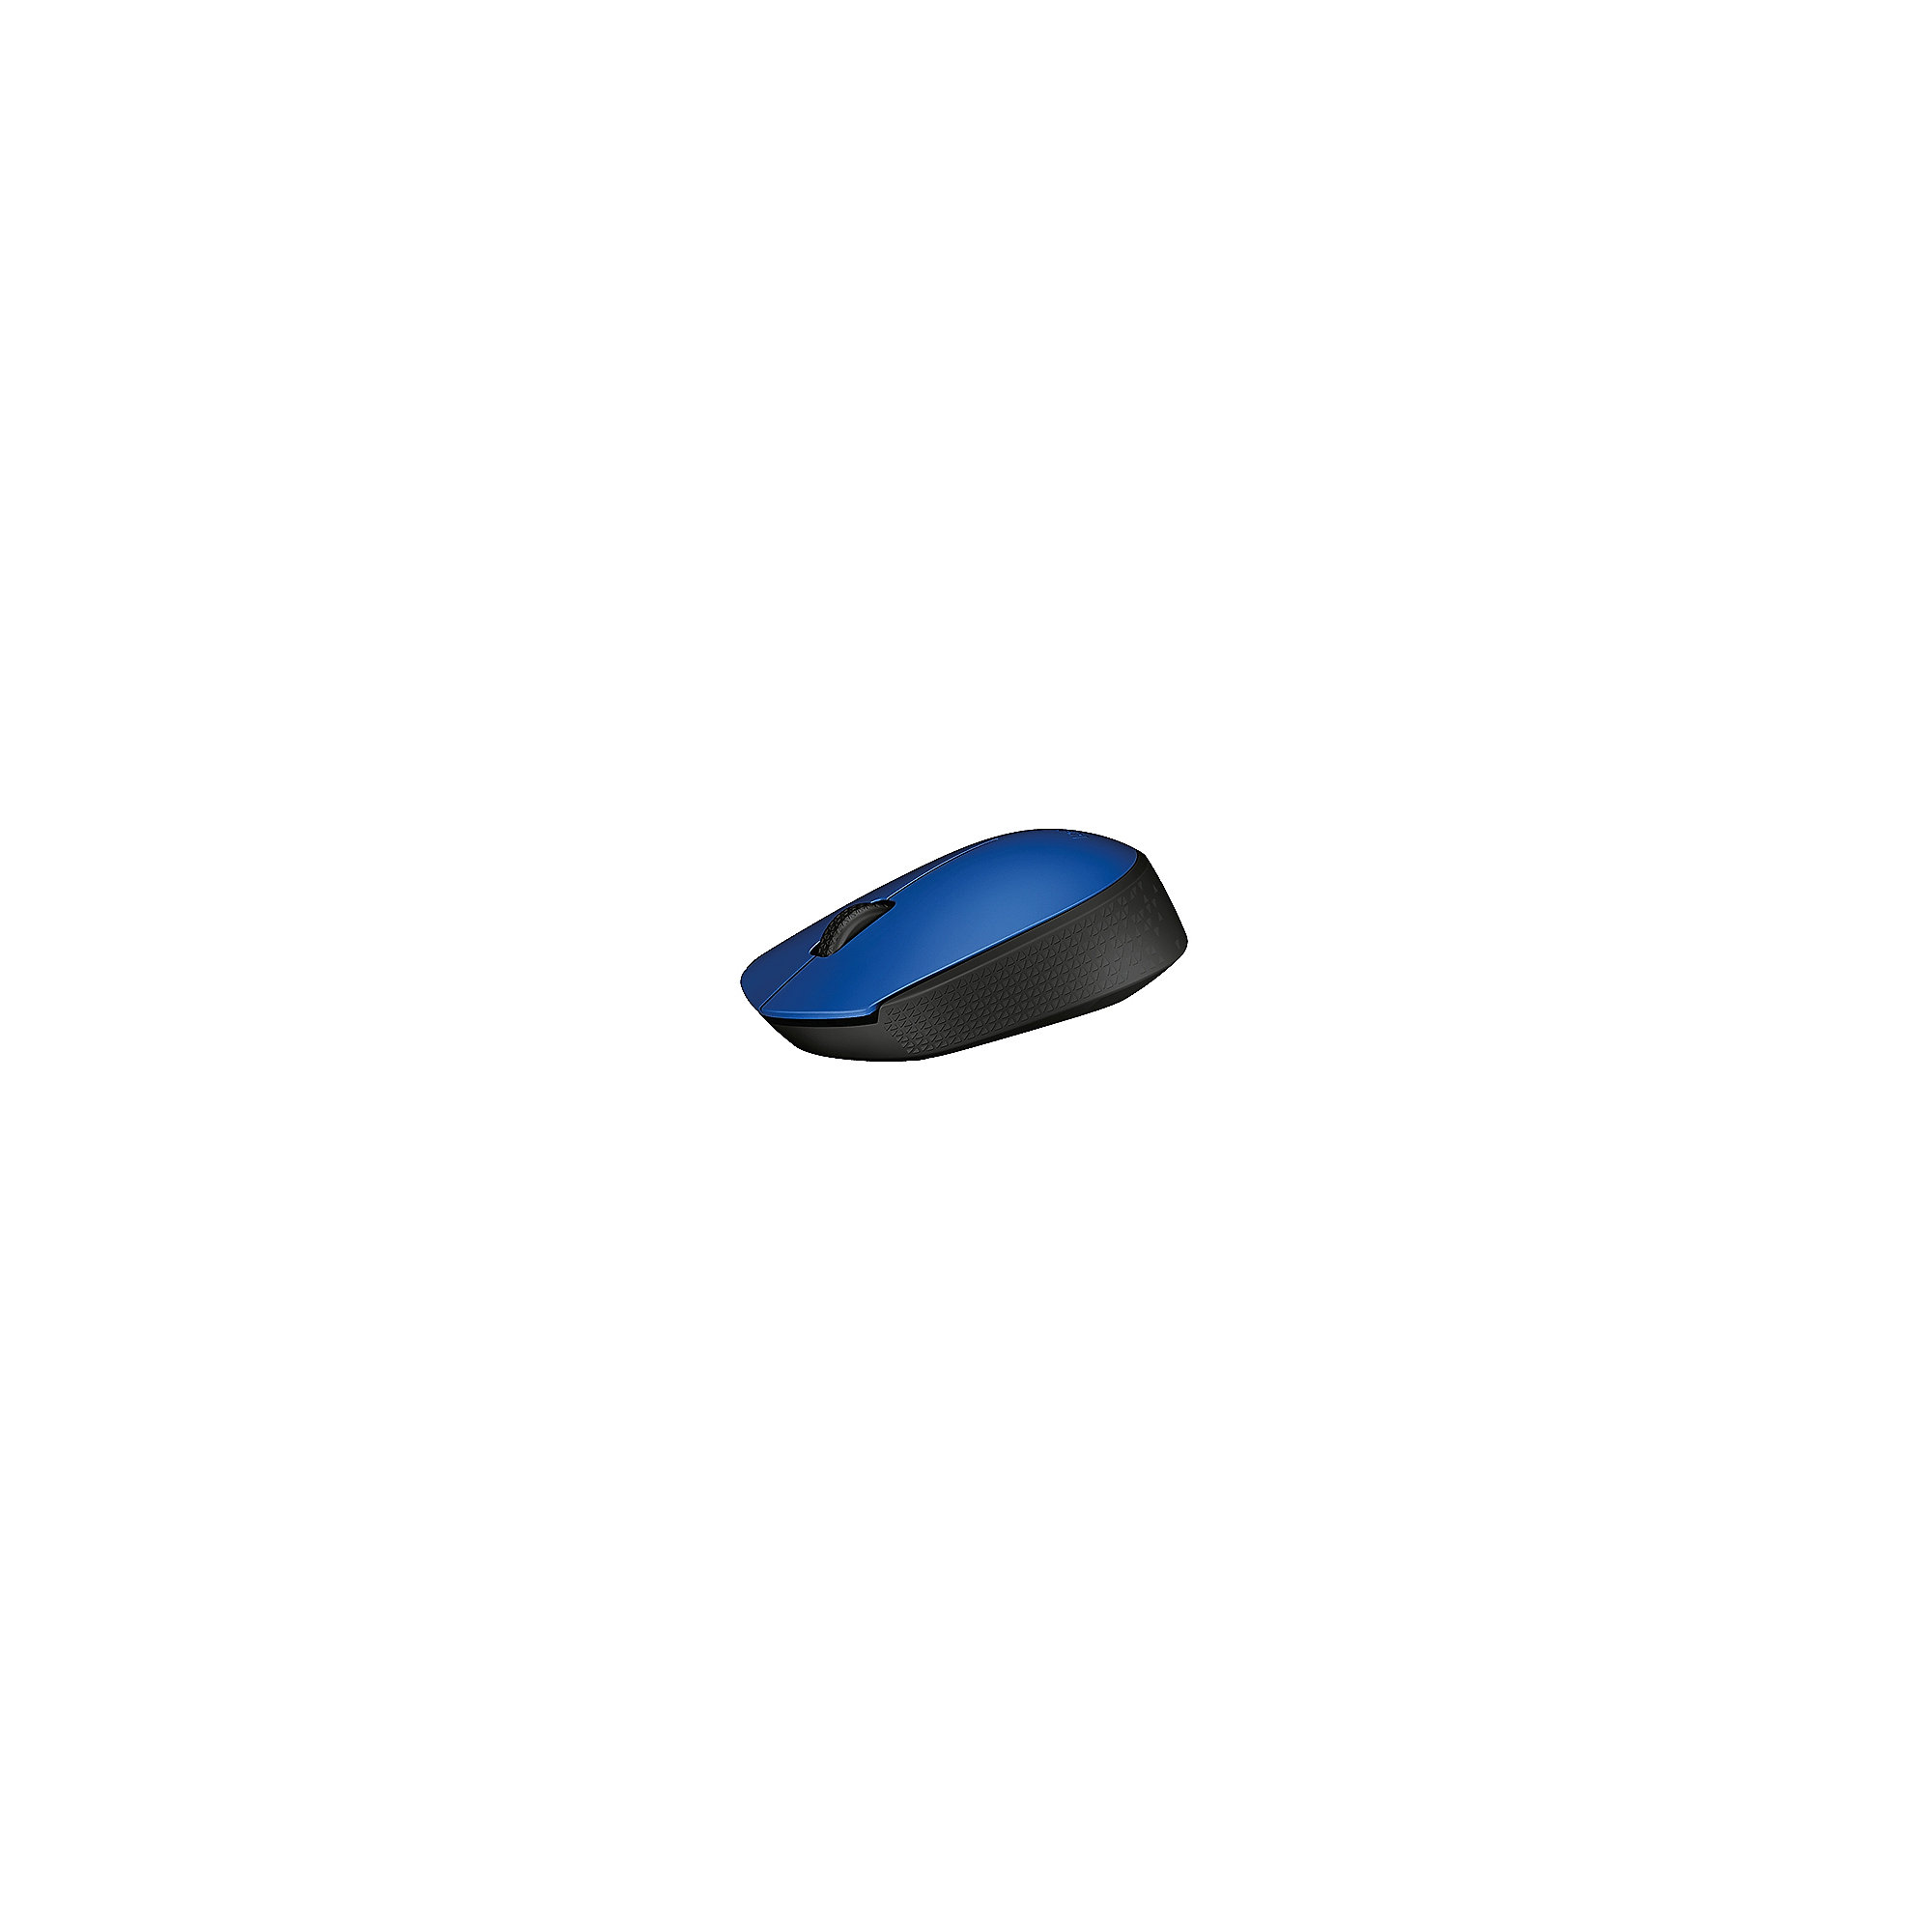 Logitech Wireless Mouse M171 blau